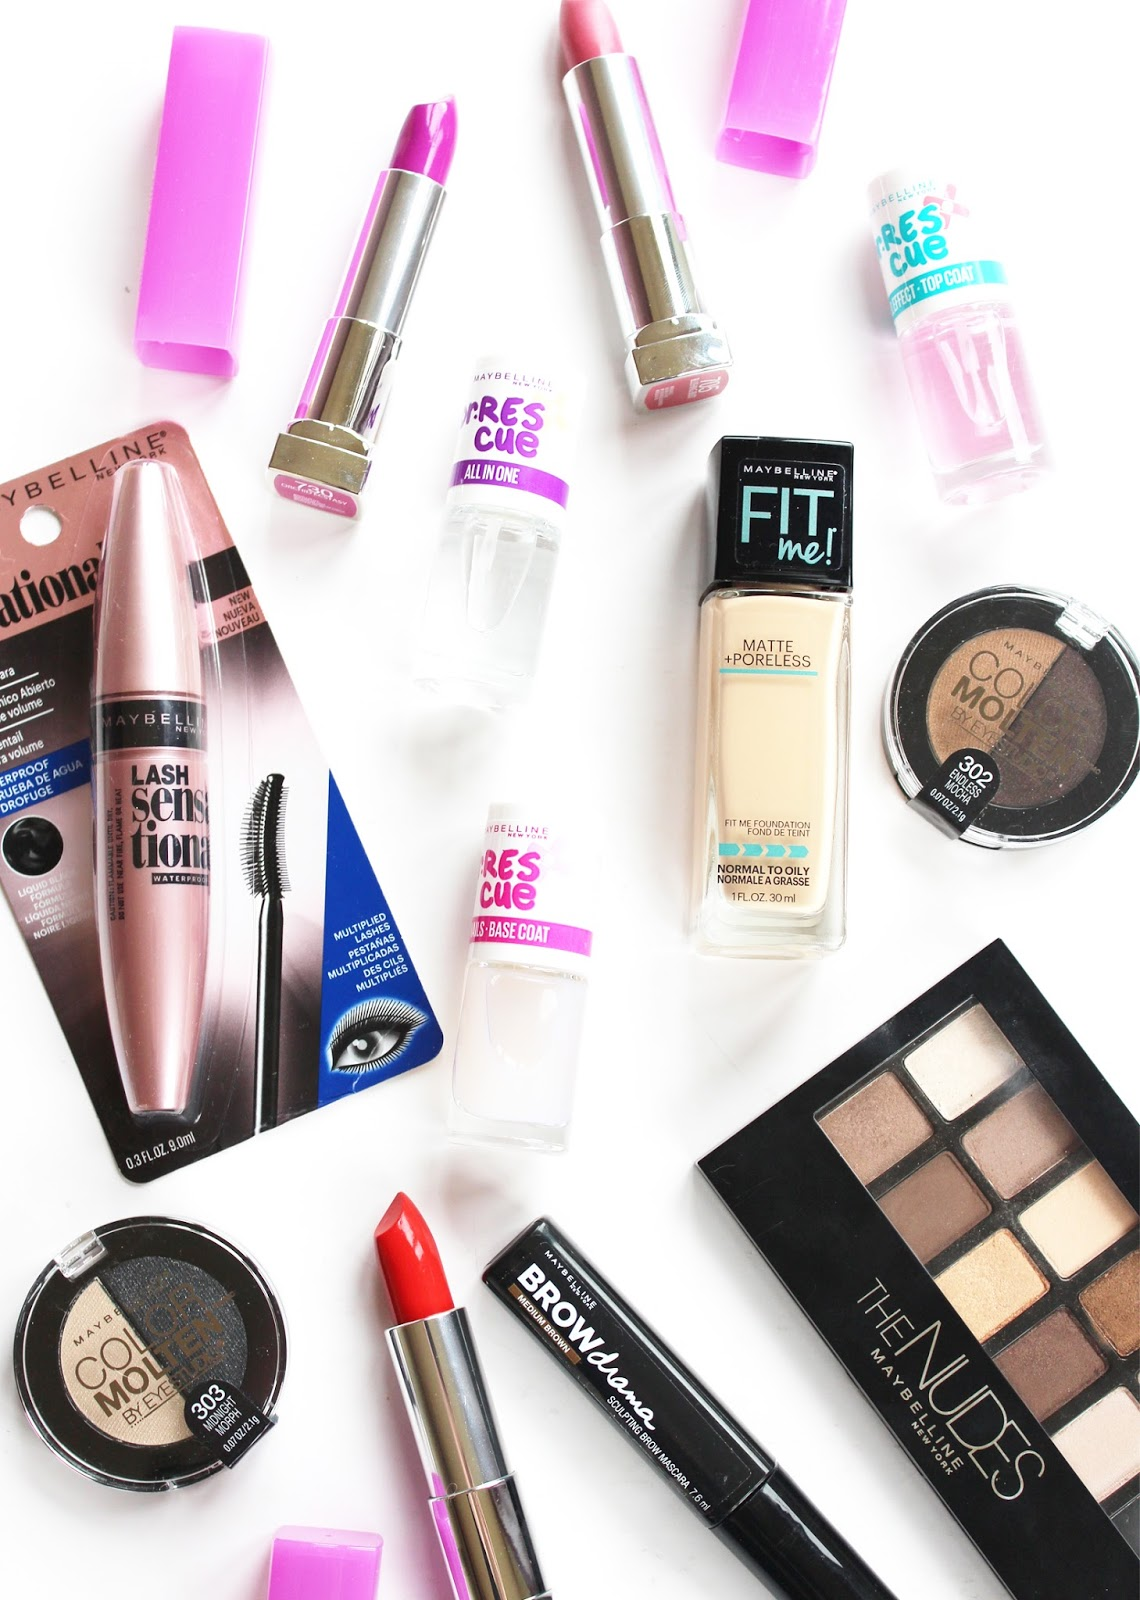 MAYBELLINE | New Releases to NZ - CassandraMyee